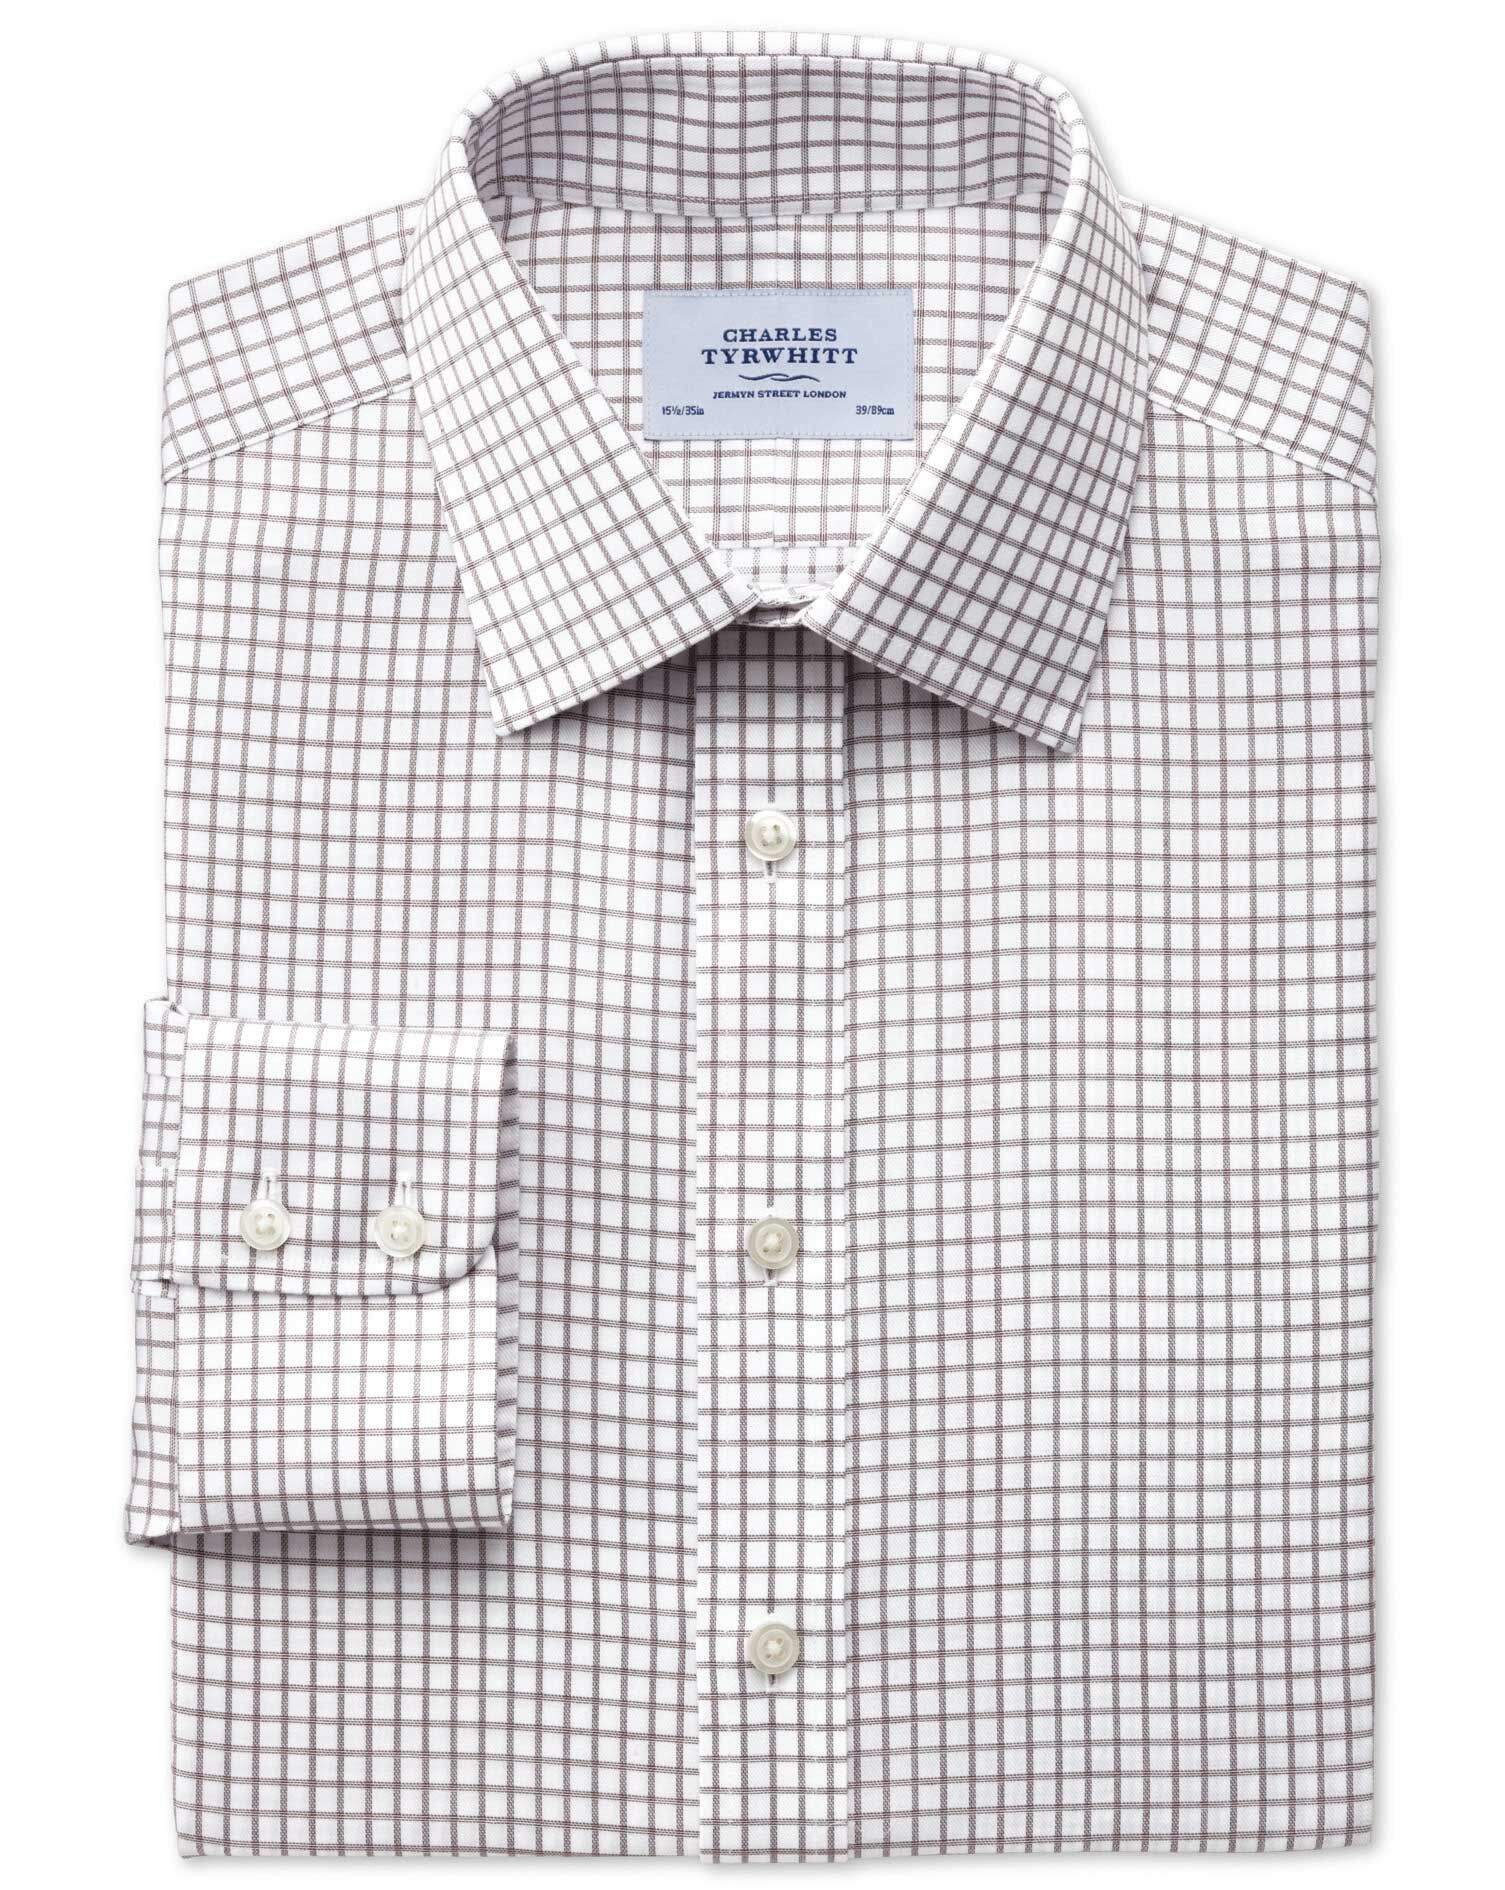 Classic Fit Non-Iron Windowpane Check Brown Cotton Formal Shirt Single Cuff Size 15/35 by Charles Ty